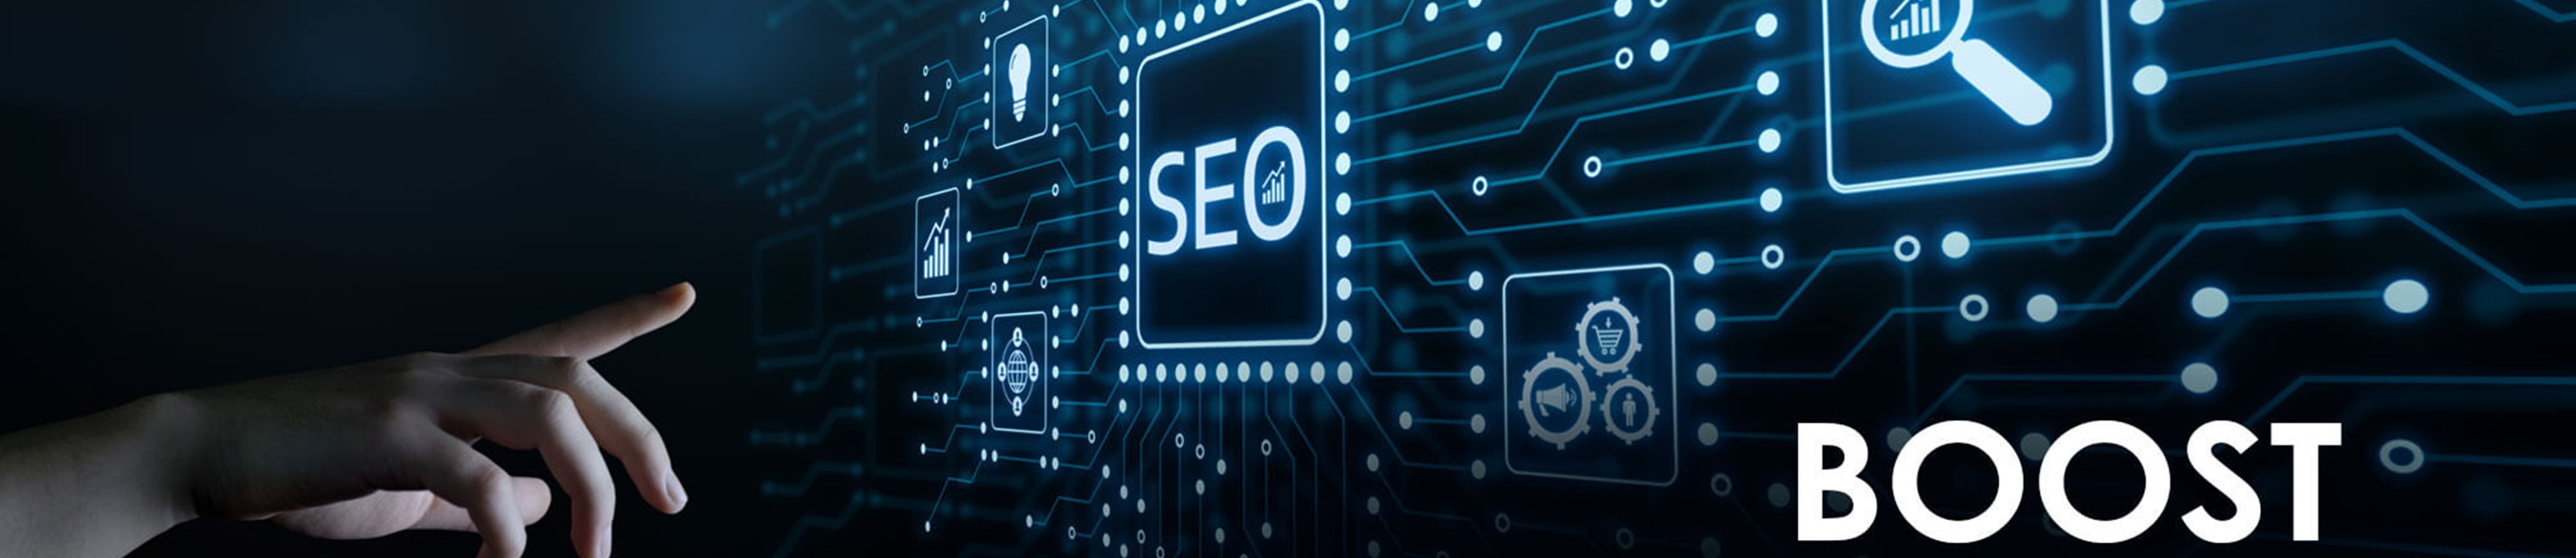 Ohappa Top Seo Boost